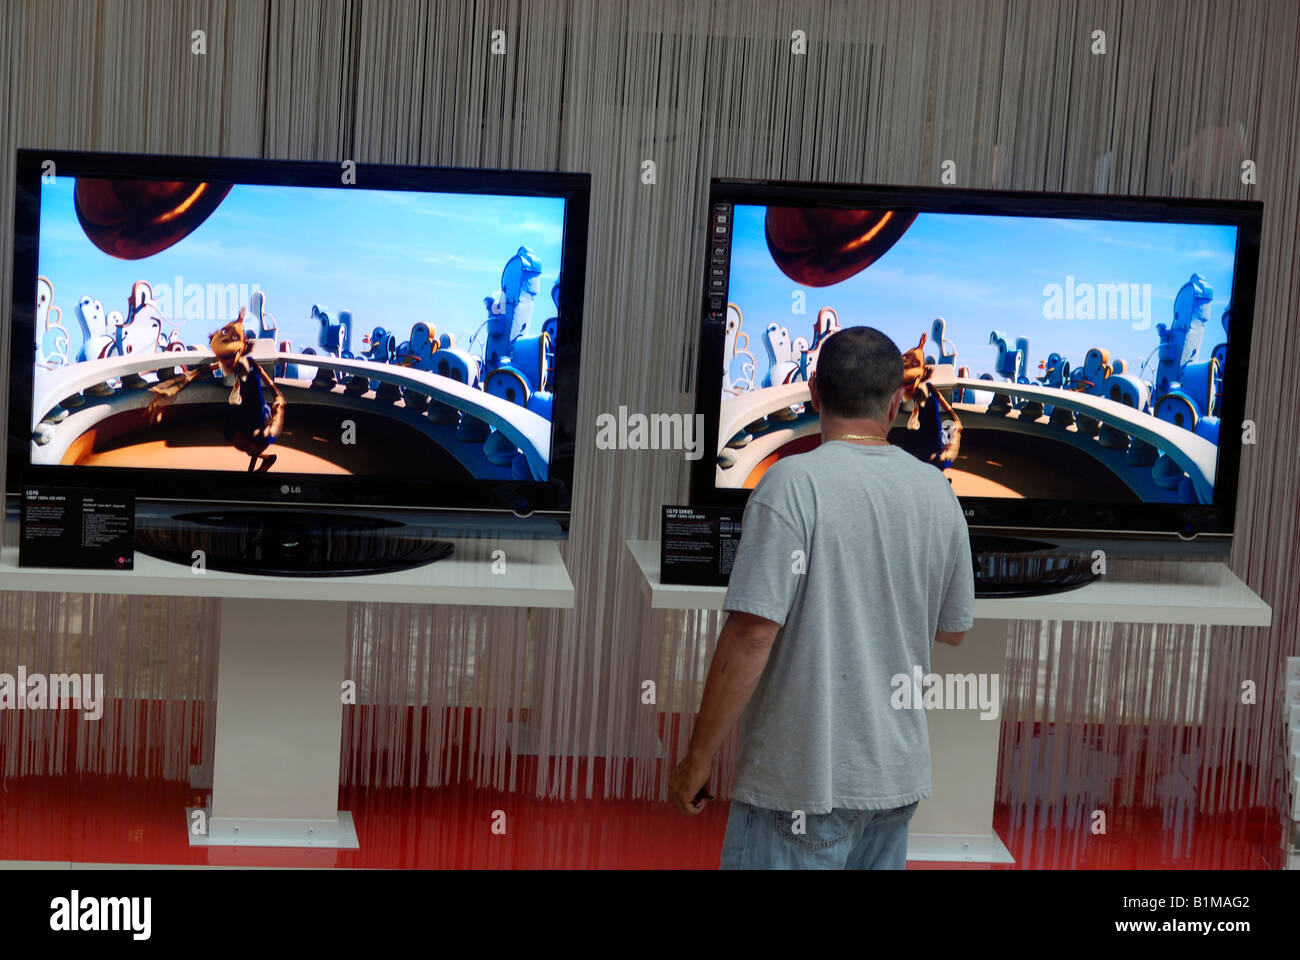 A consumer browses the LG Scarlet high definition televisions in the World Financial Center in New York - Stock Image